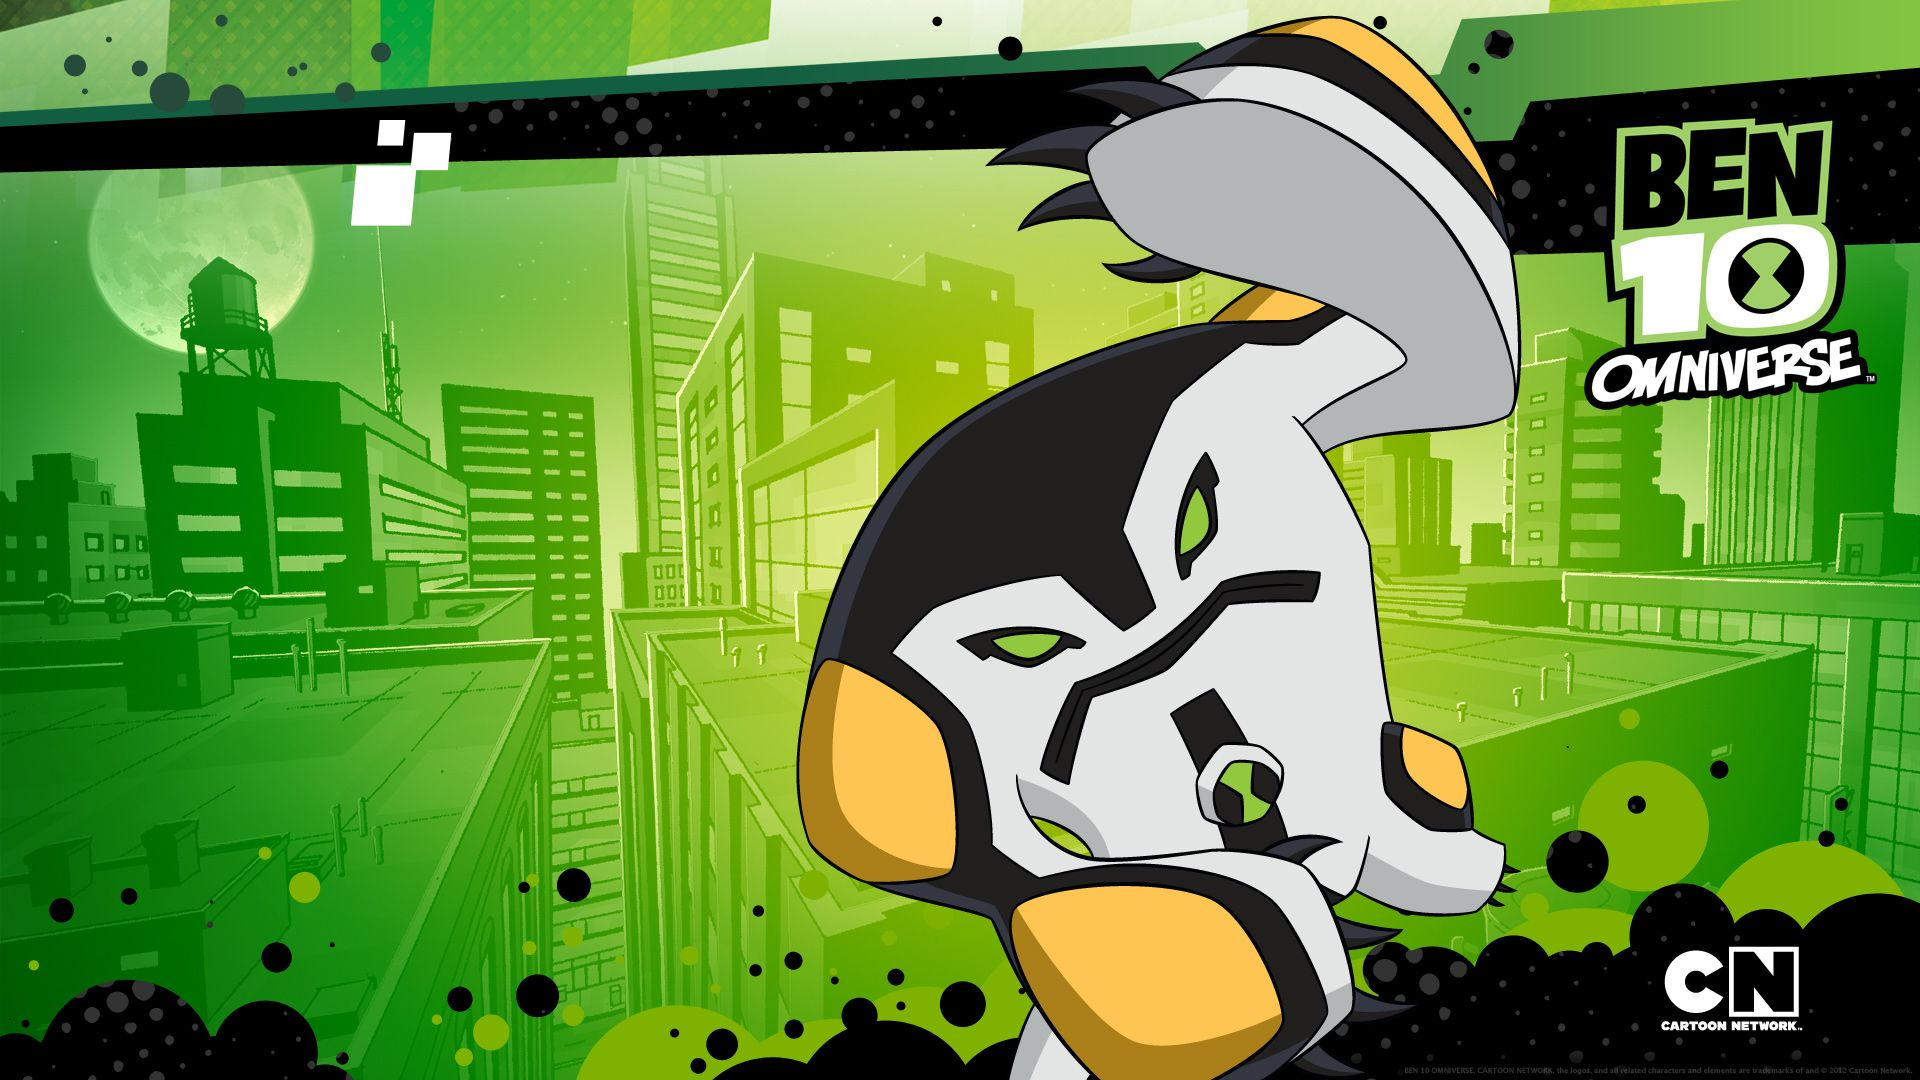 Hd Ben 10 Wallpapers Hd Wallpapers Backgrounds Of Your Choice Los Simpson